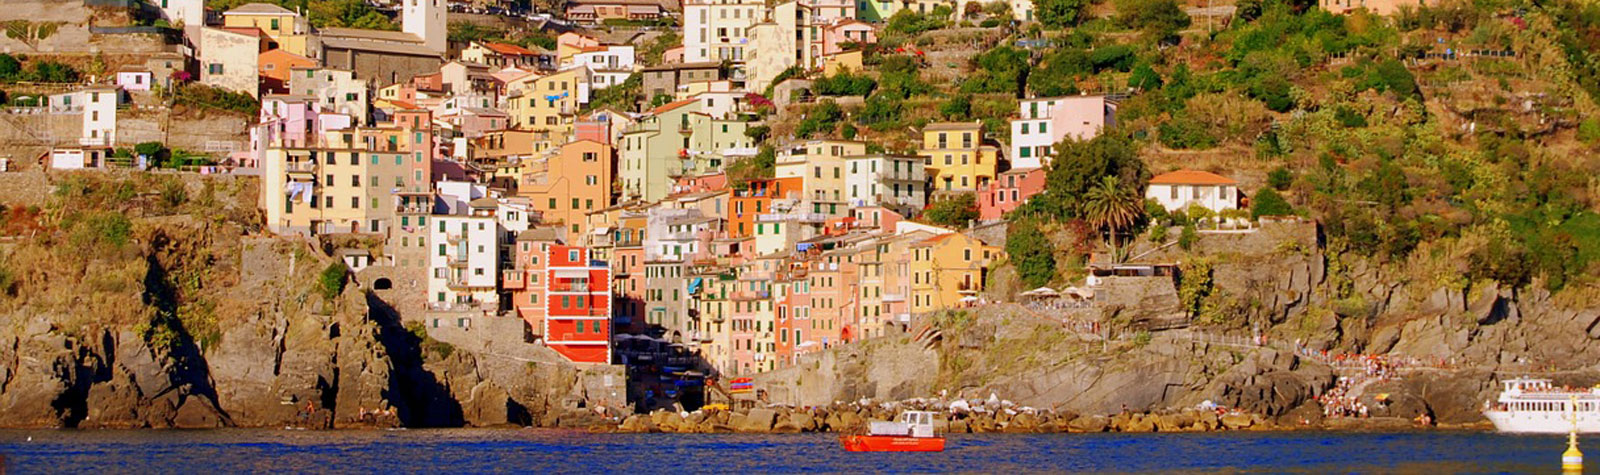 All that you need to know about boat trips in Cinque Terre